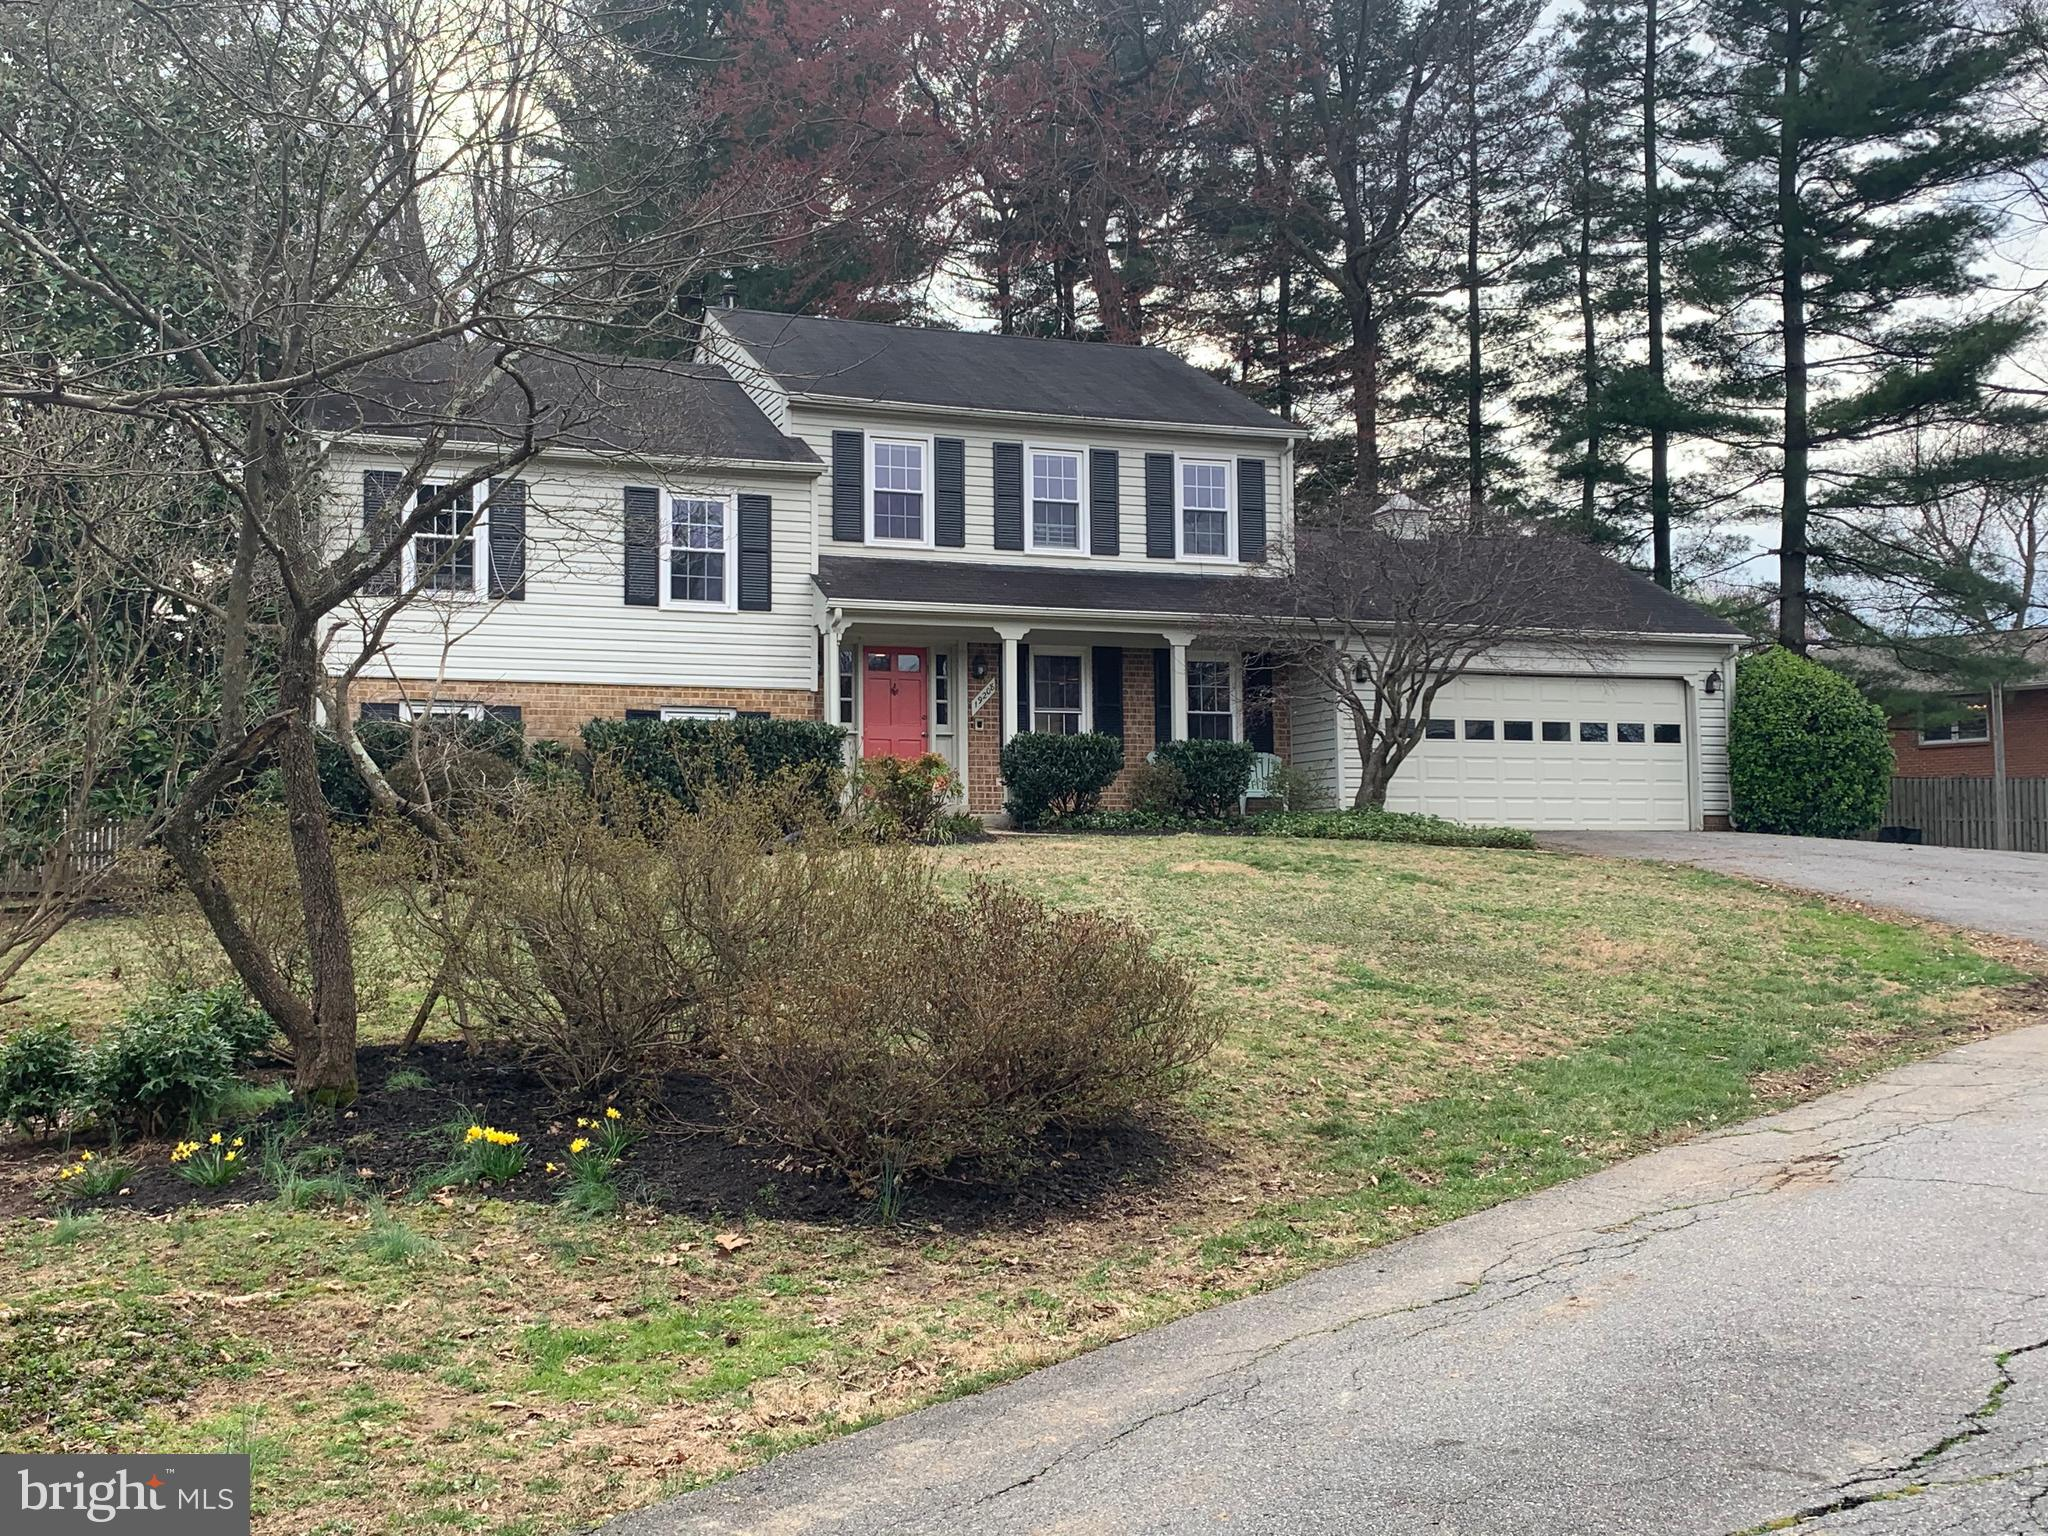 19208 TREADWAY ROAD, BROOKEVILLE, MD 20833